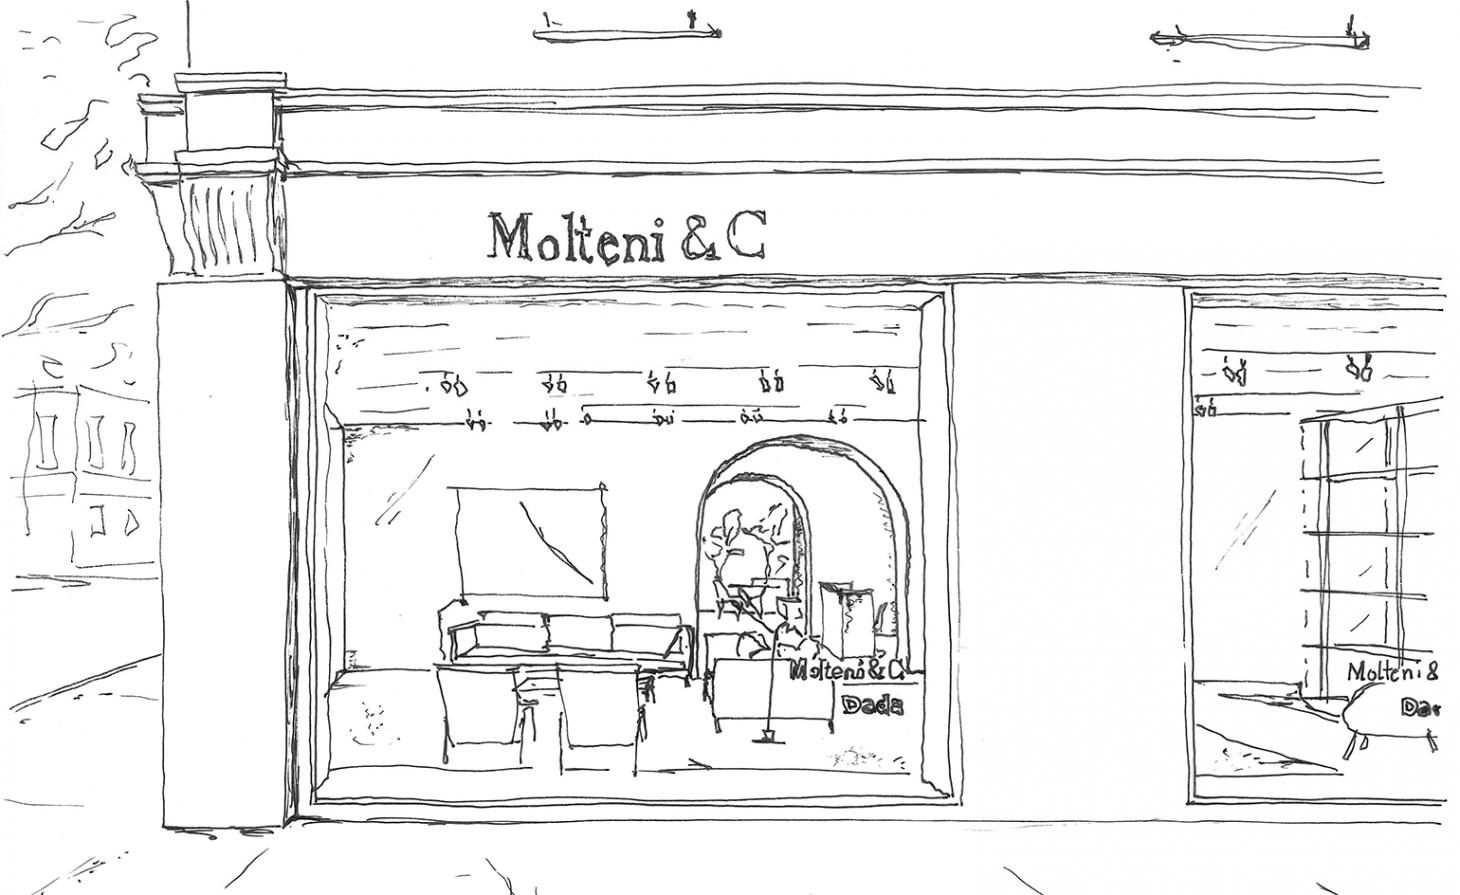 Hand sketch by Vincent Van Duysen of the new Molteni & C showroom